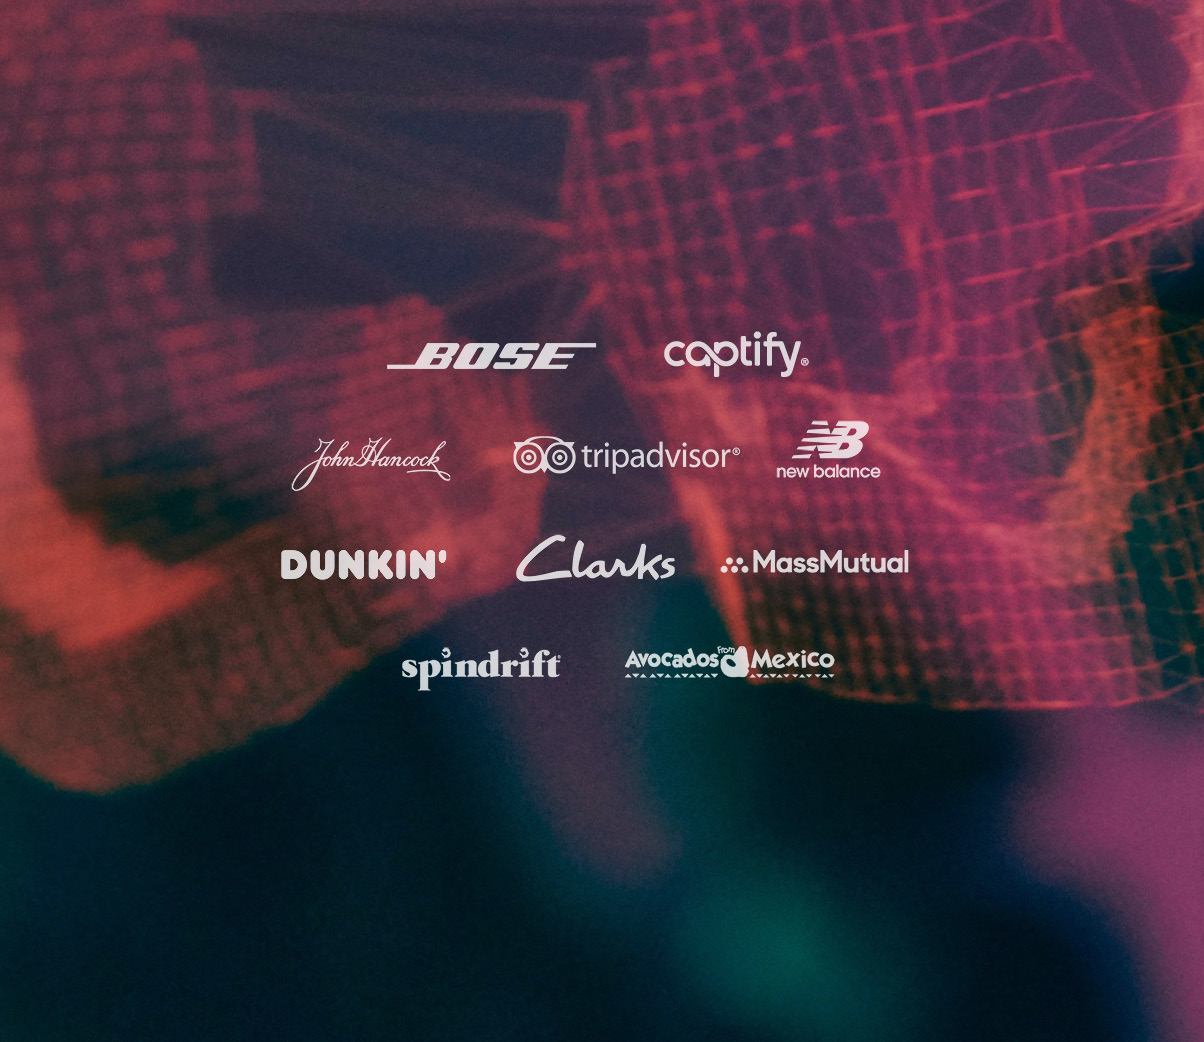 Brands Tune In To Digital Event- Hosted By Bose, Powered By Captify